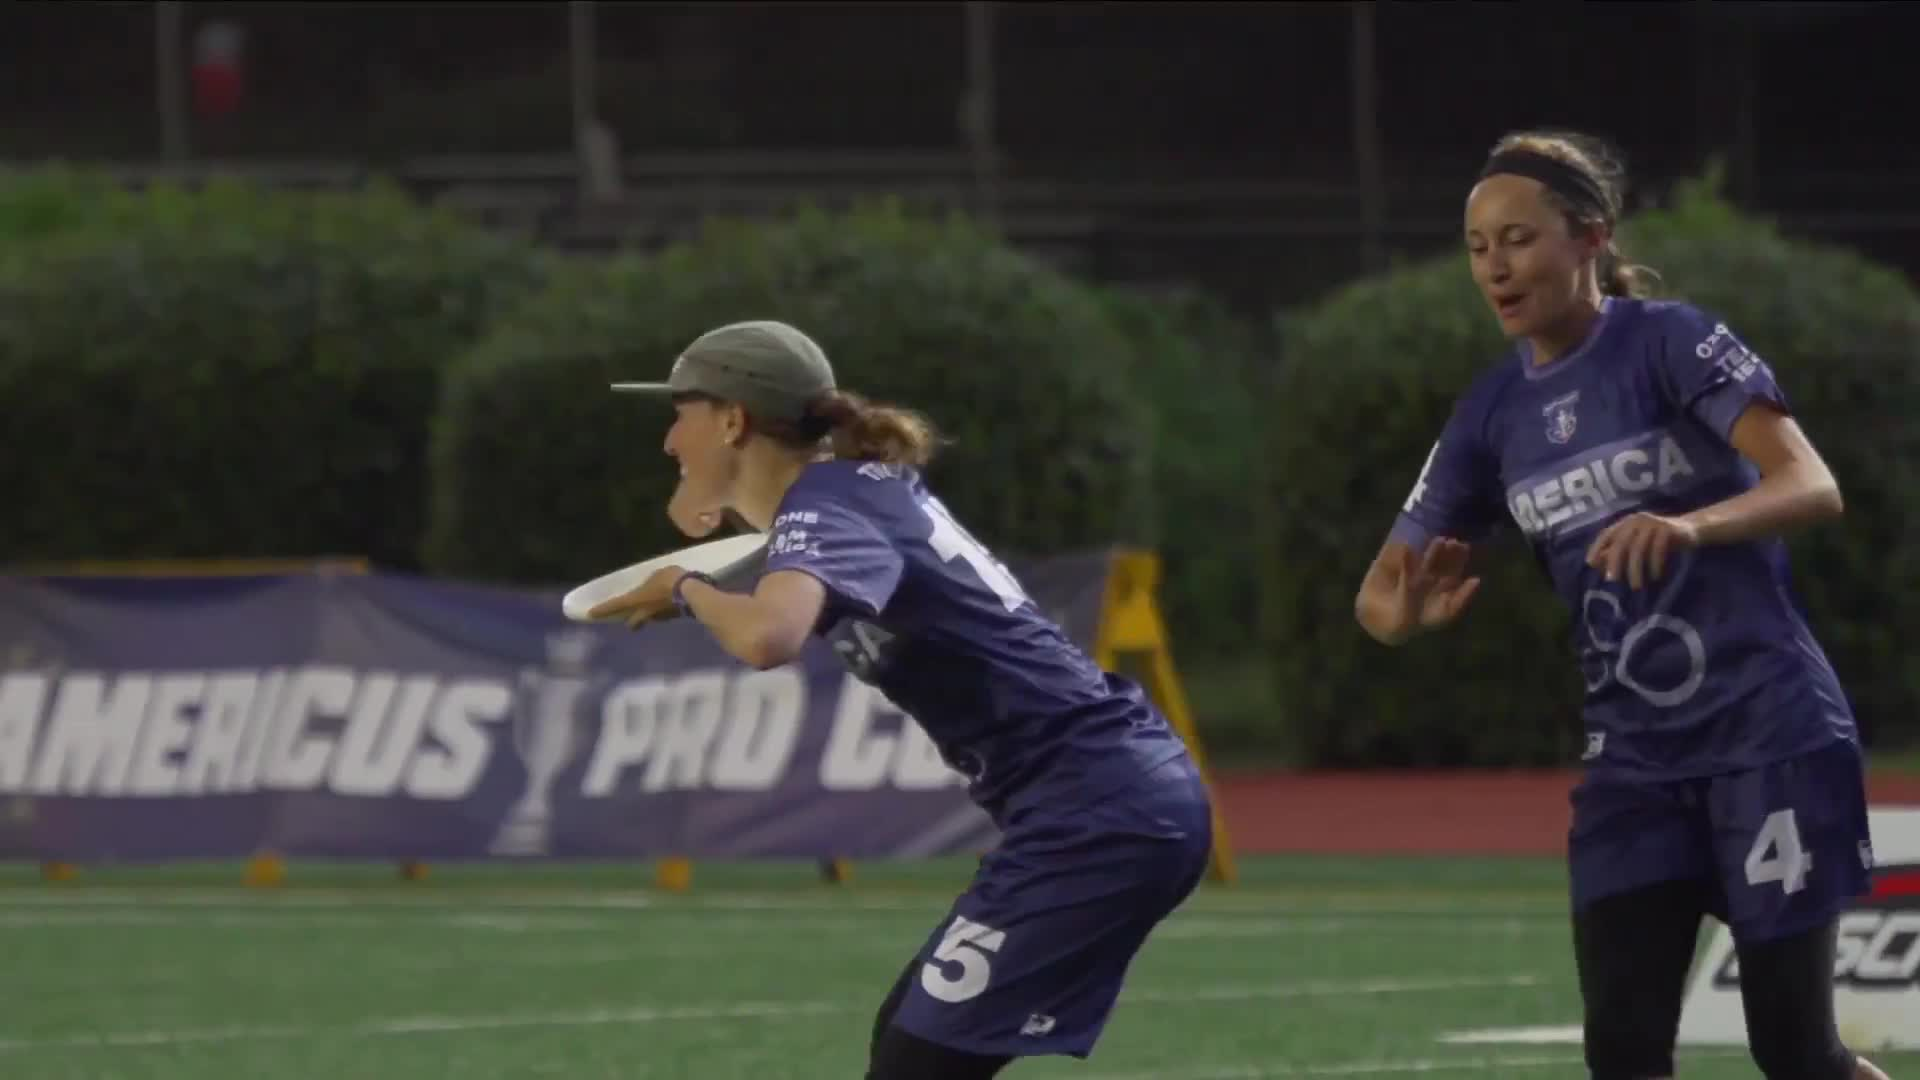 Sports, TheAUDLChannel, american ultimate disc league, atlanta ozone, audl, celebrate, eurostars, highlight reel, highlights, sports, theaudlchannel, ultimate, ultimate frisbee, Hungry GIFs